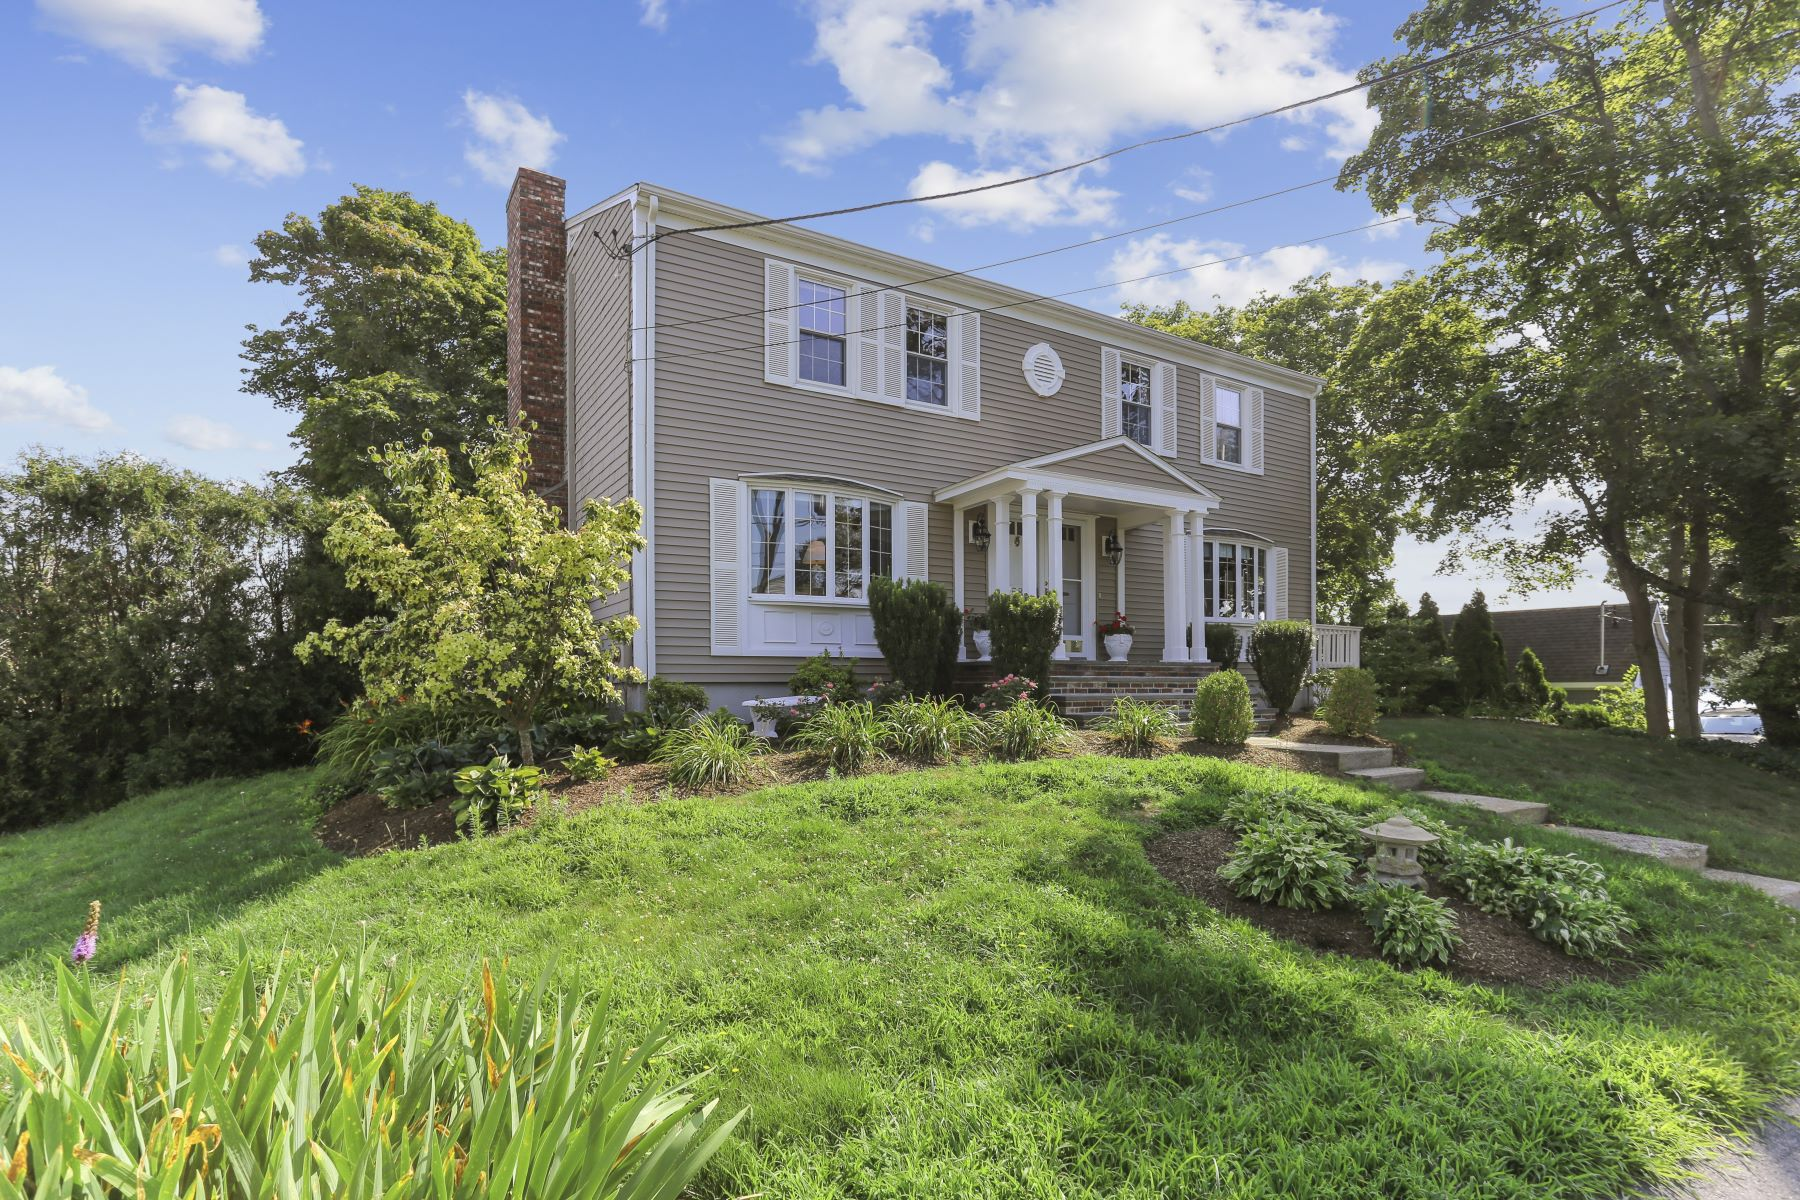 Single Family Homes for Sale at 58 Gay St., Somerset, MA 58 Gay St. Somerset, Massachusetts 02726 United States